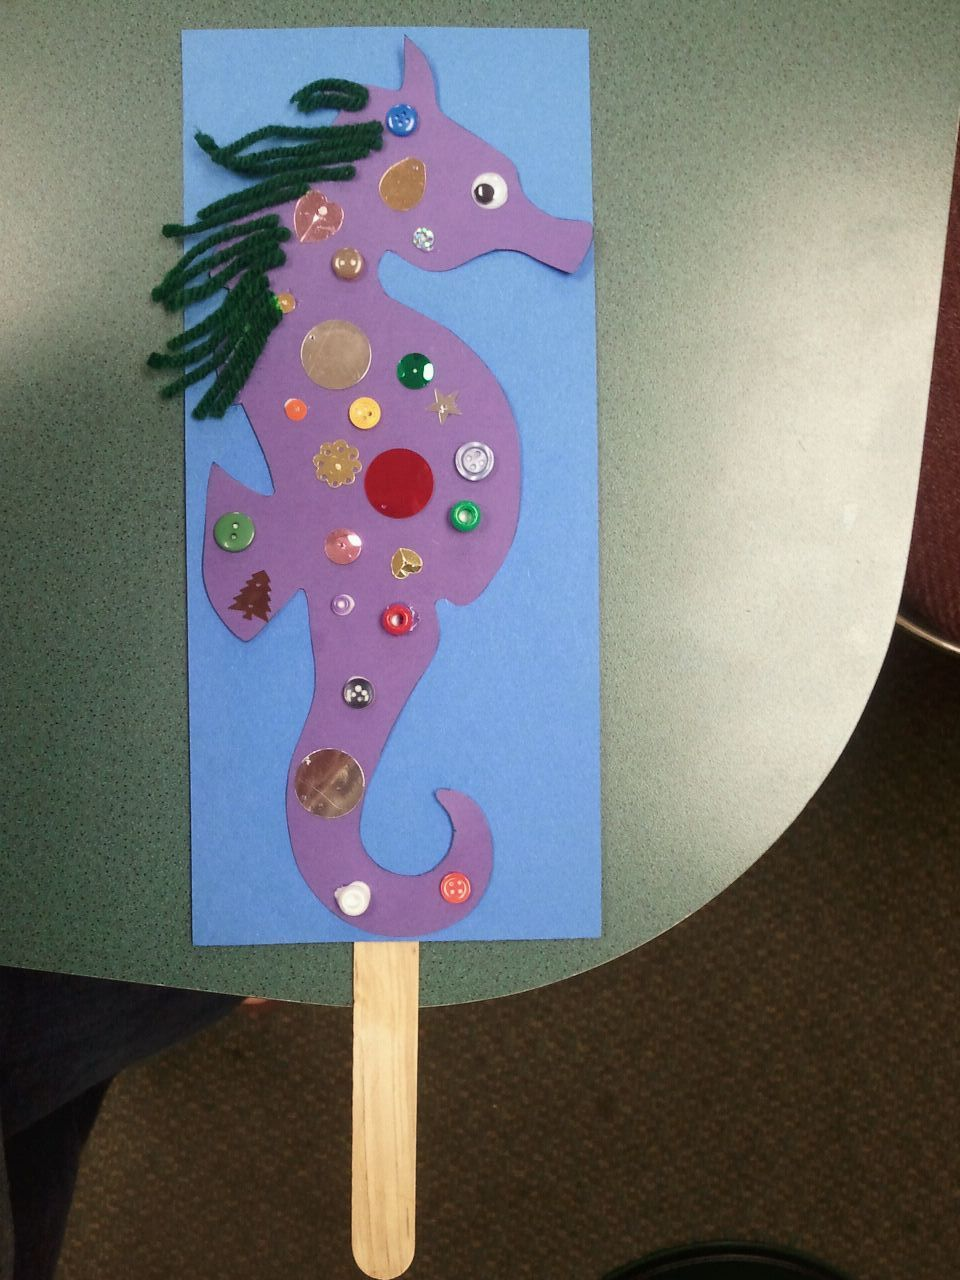 Pin By Huyen Bui On Storytime Ideas Seahorse Crafts Preschool Arts And Crafts Crafts [ 1280 x 960 Pixel ]